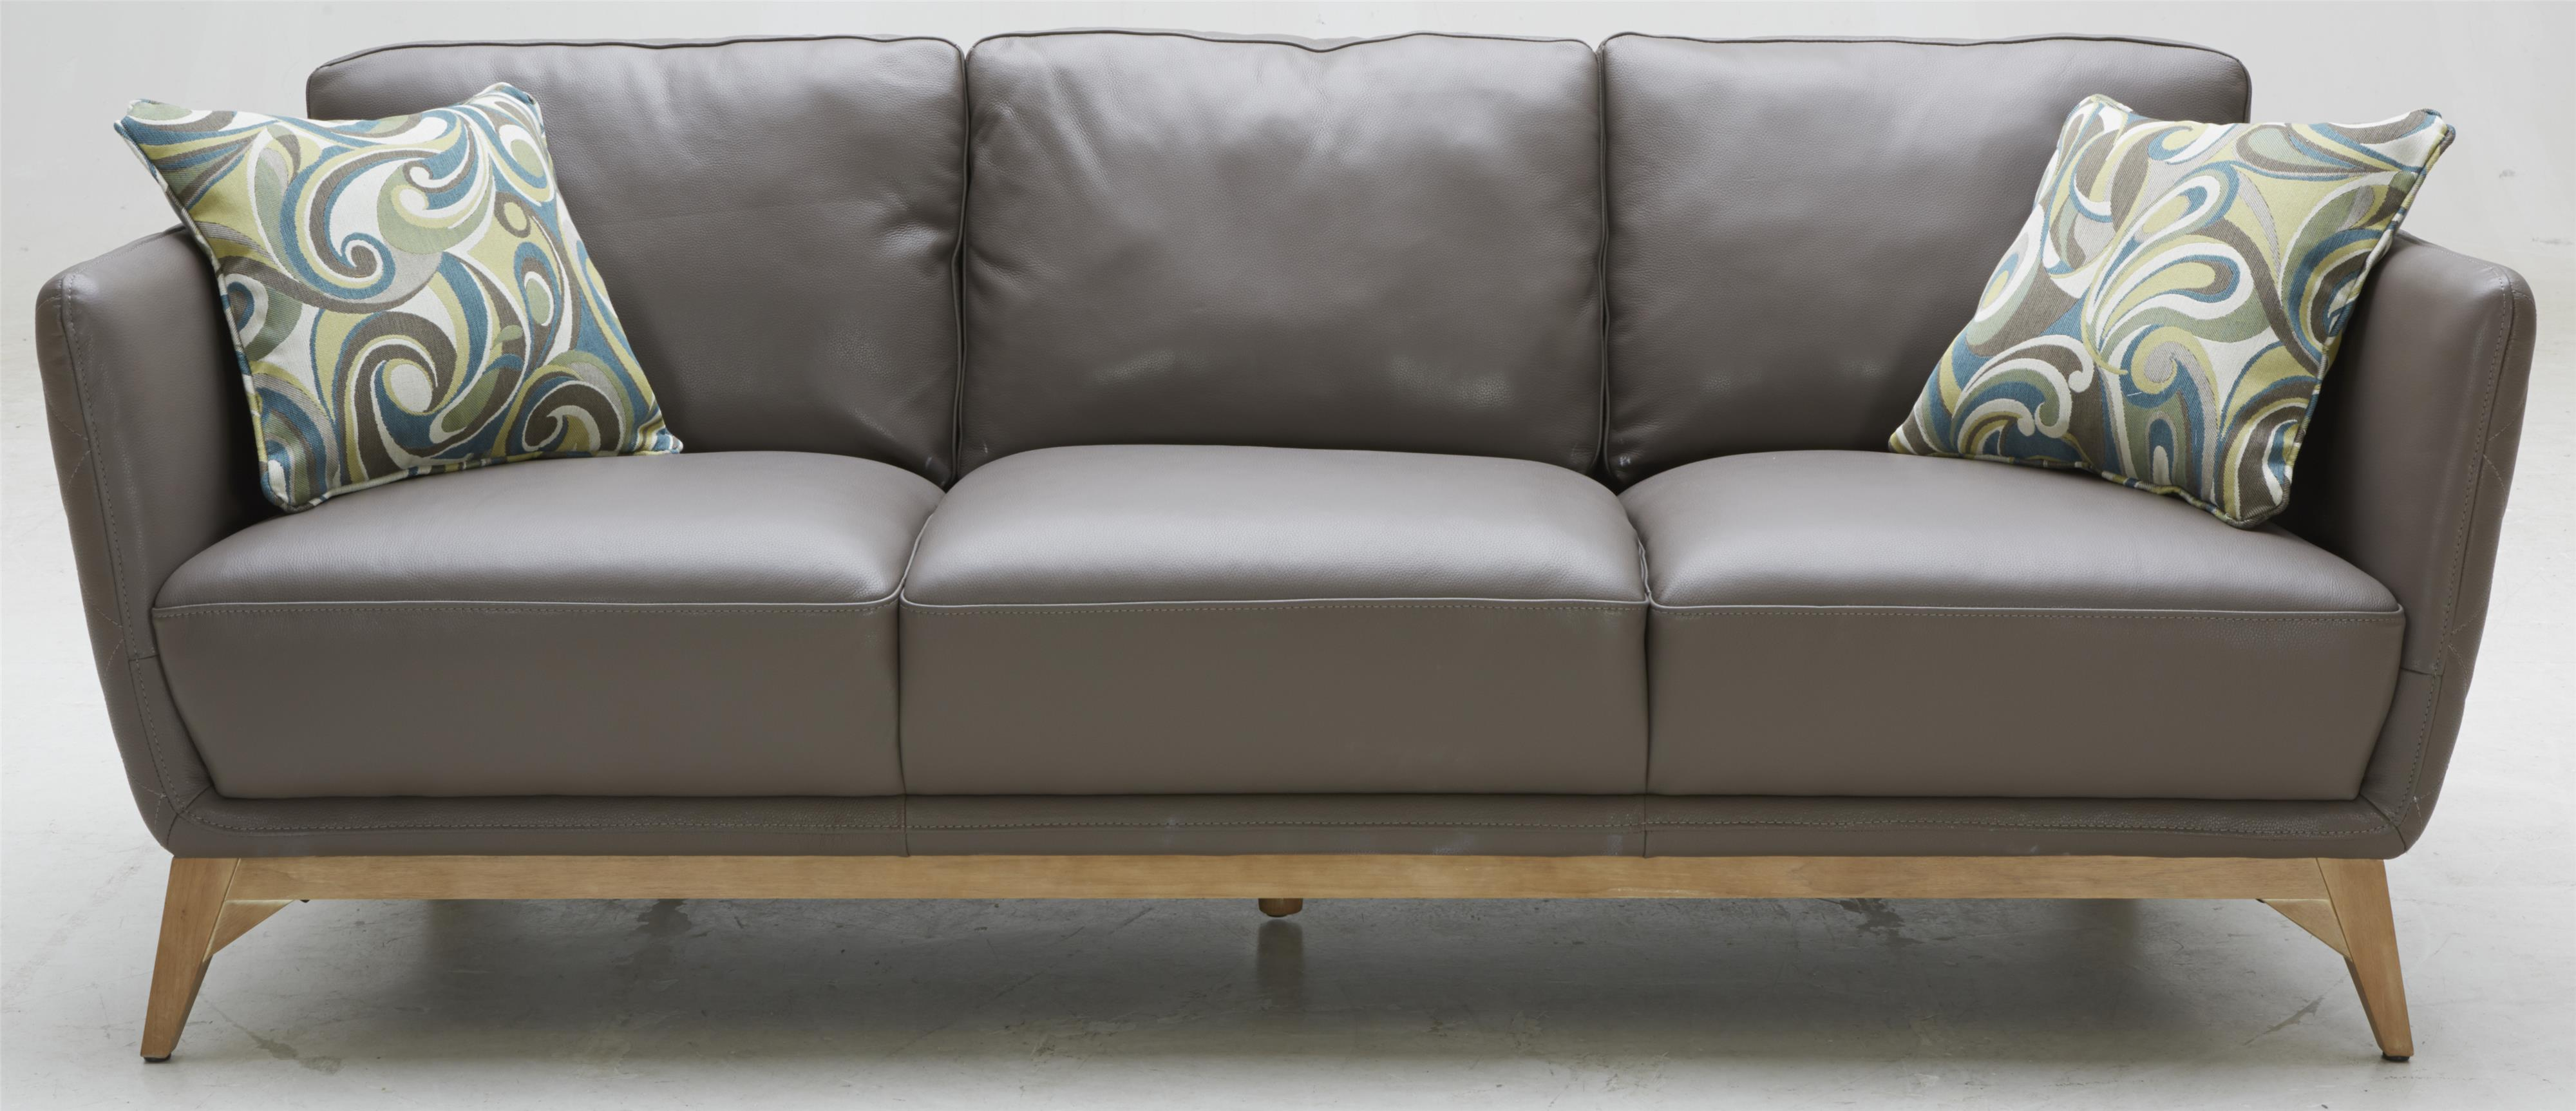 1961 Contemporary Leather Match Sofa by Warehouse M at Pilgrim Furniture  City